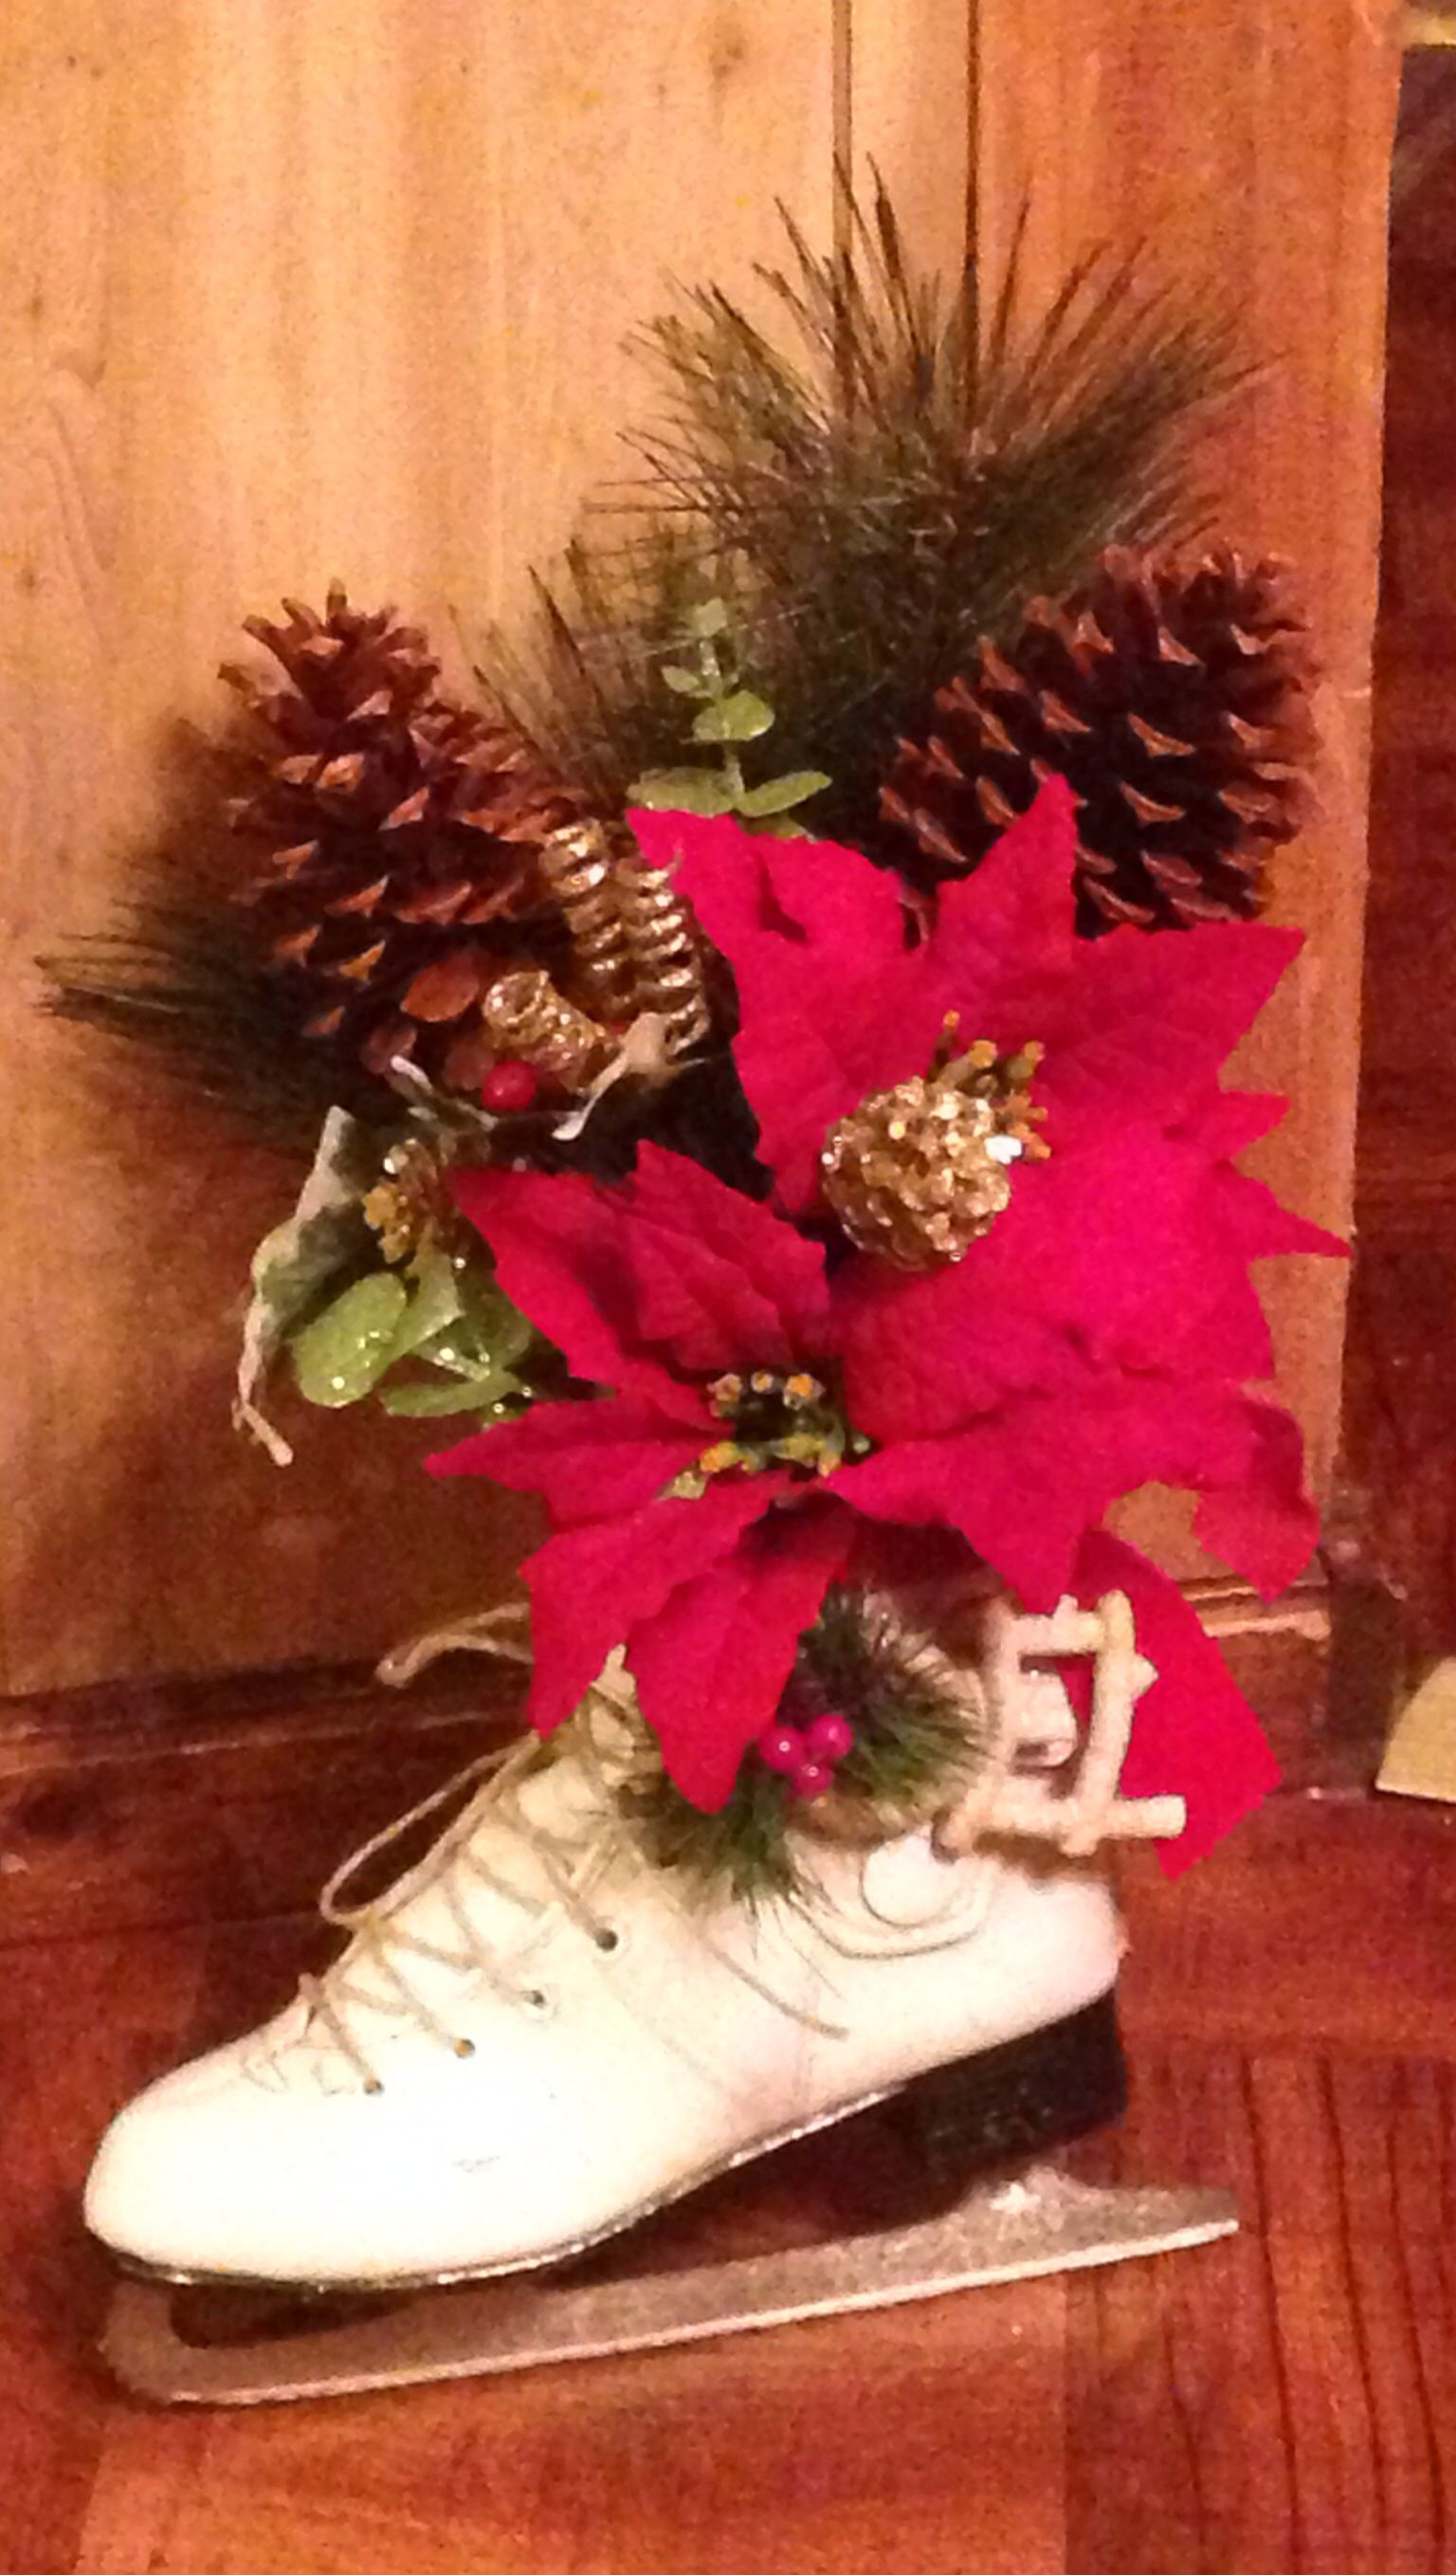 Ice Skate Christmas arrangement I stuffed it with paper Sprayed